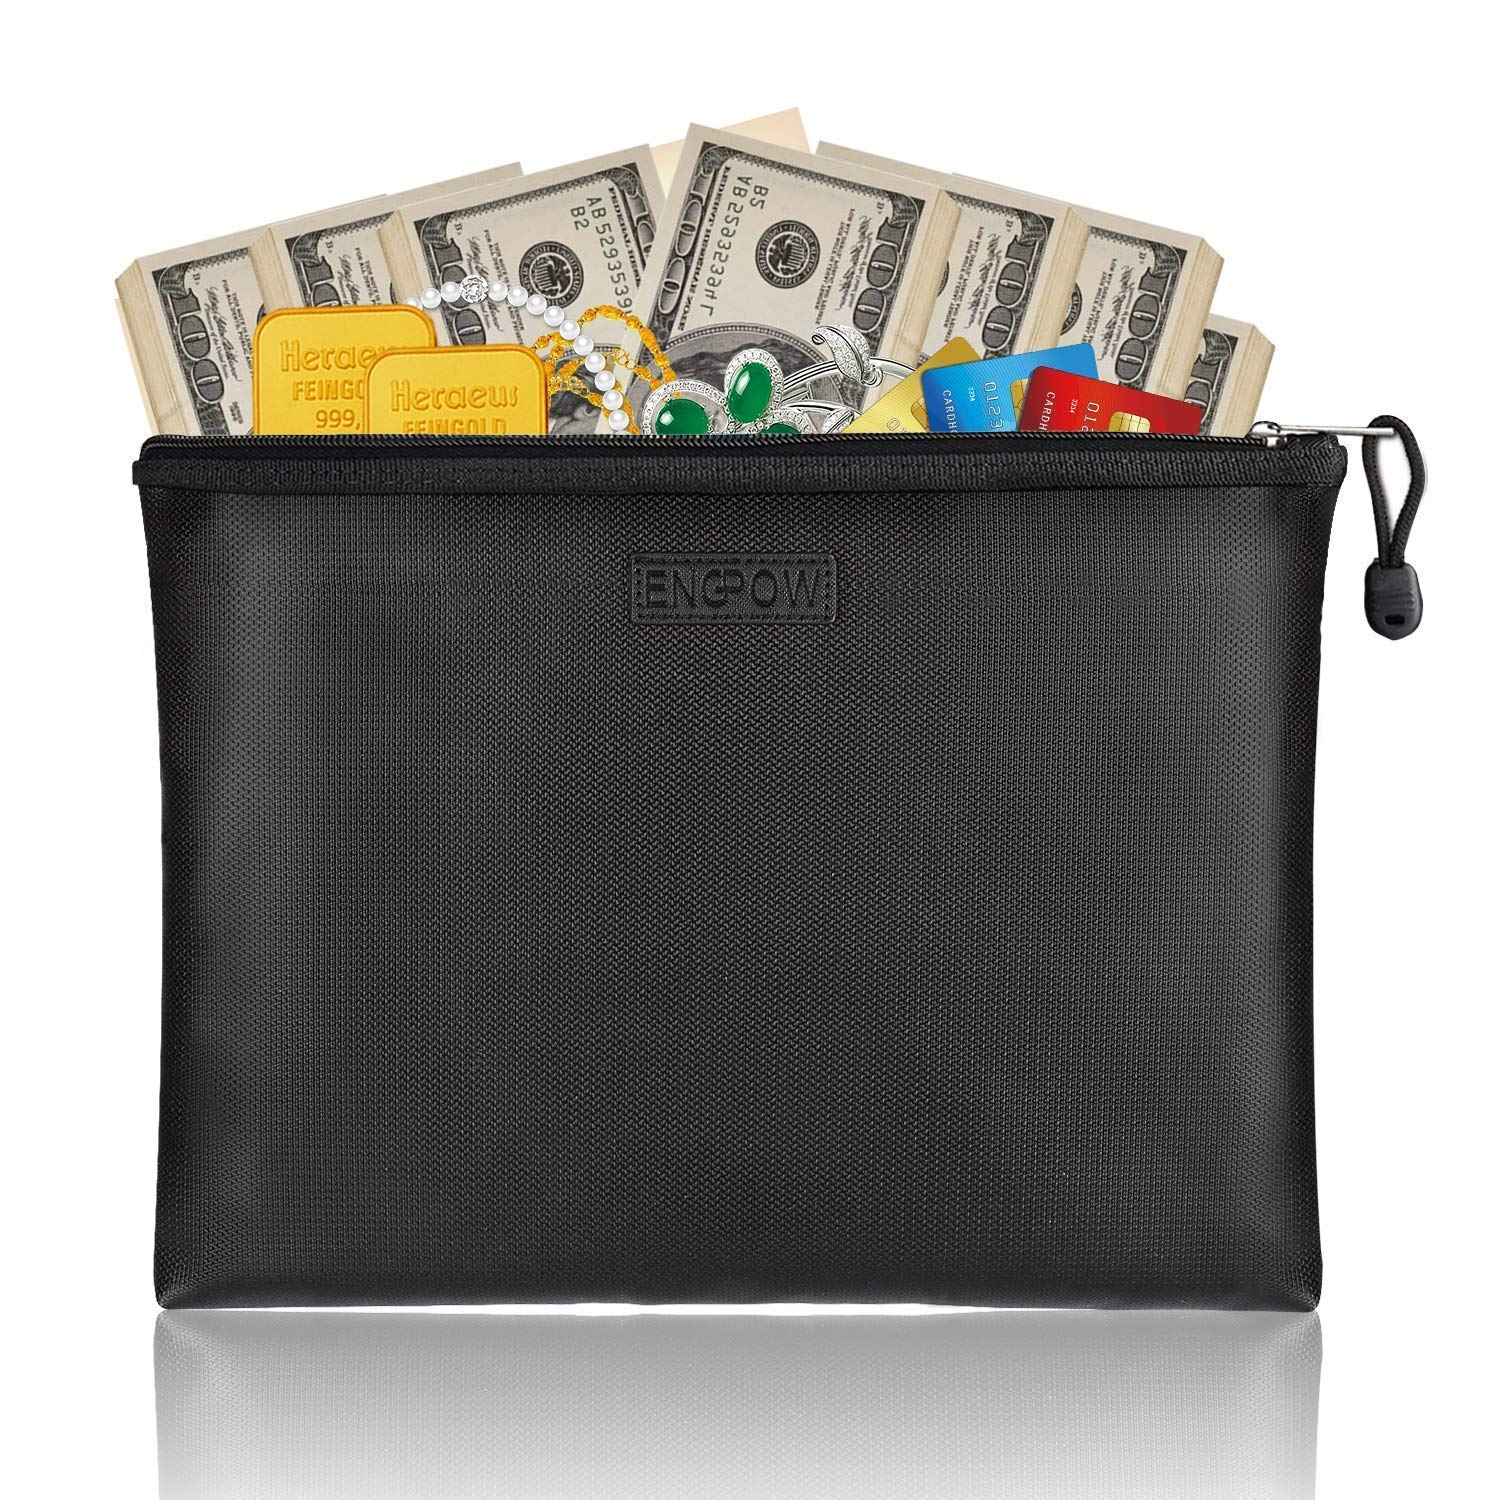 Fireproof Safe File Bags ENGPOW A4 Size Zipper Closure Business Document Organizer Portable Filing Pouch Office Stationery Storage Fire and Water Resistant Money Bag 13.5×9.8×1.4 Black (Large)